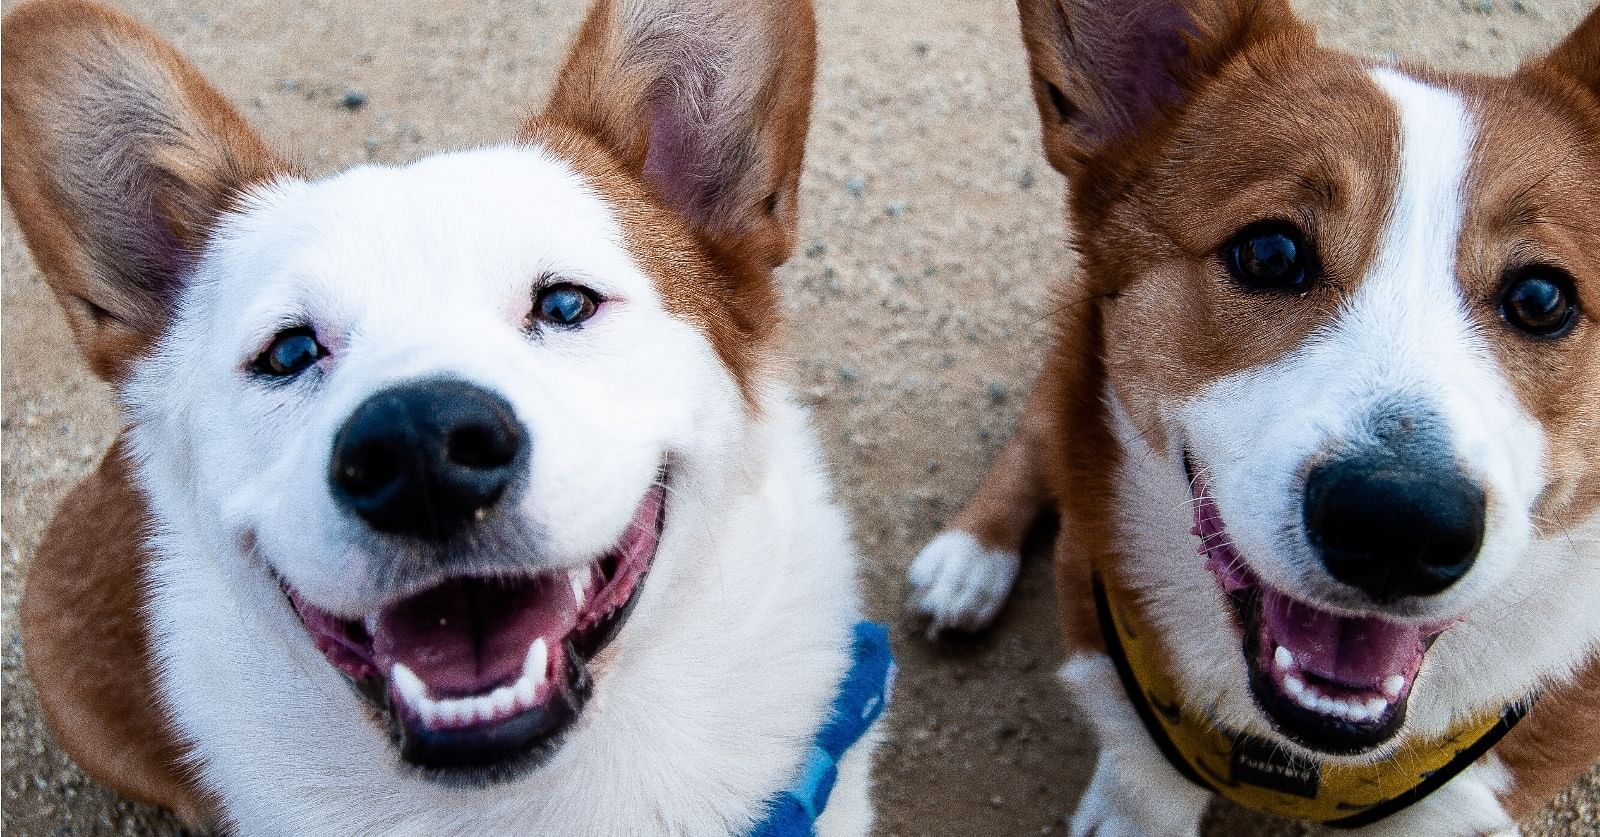 Photo Two white and tan dogs by gotdaflow on Unsplash.